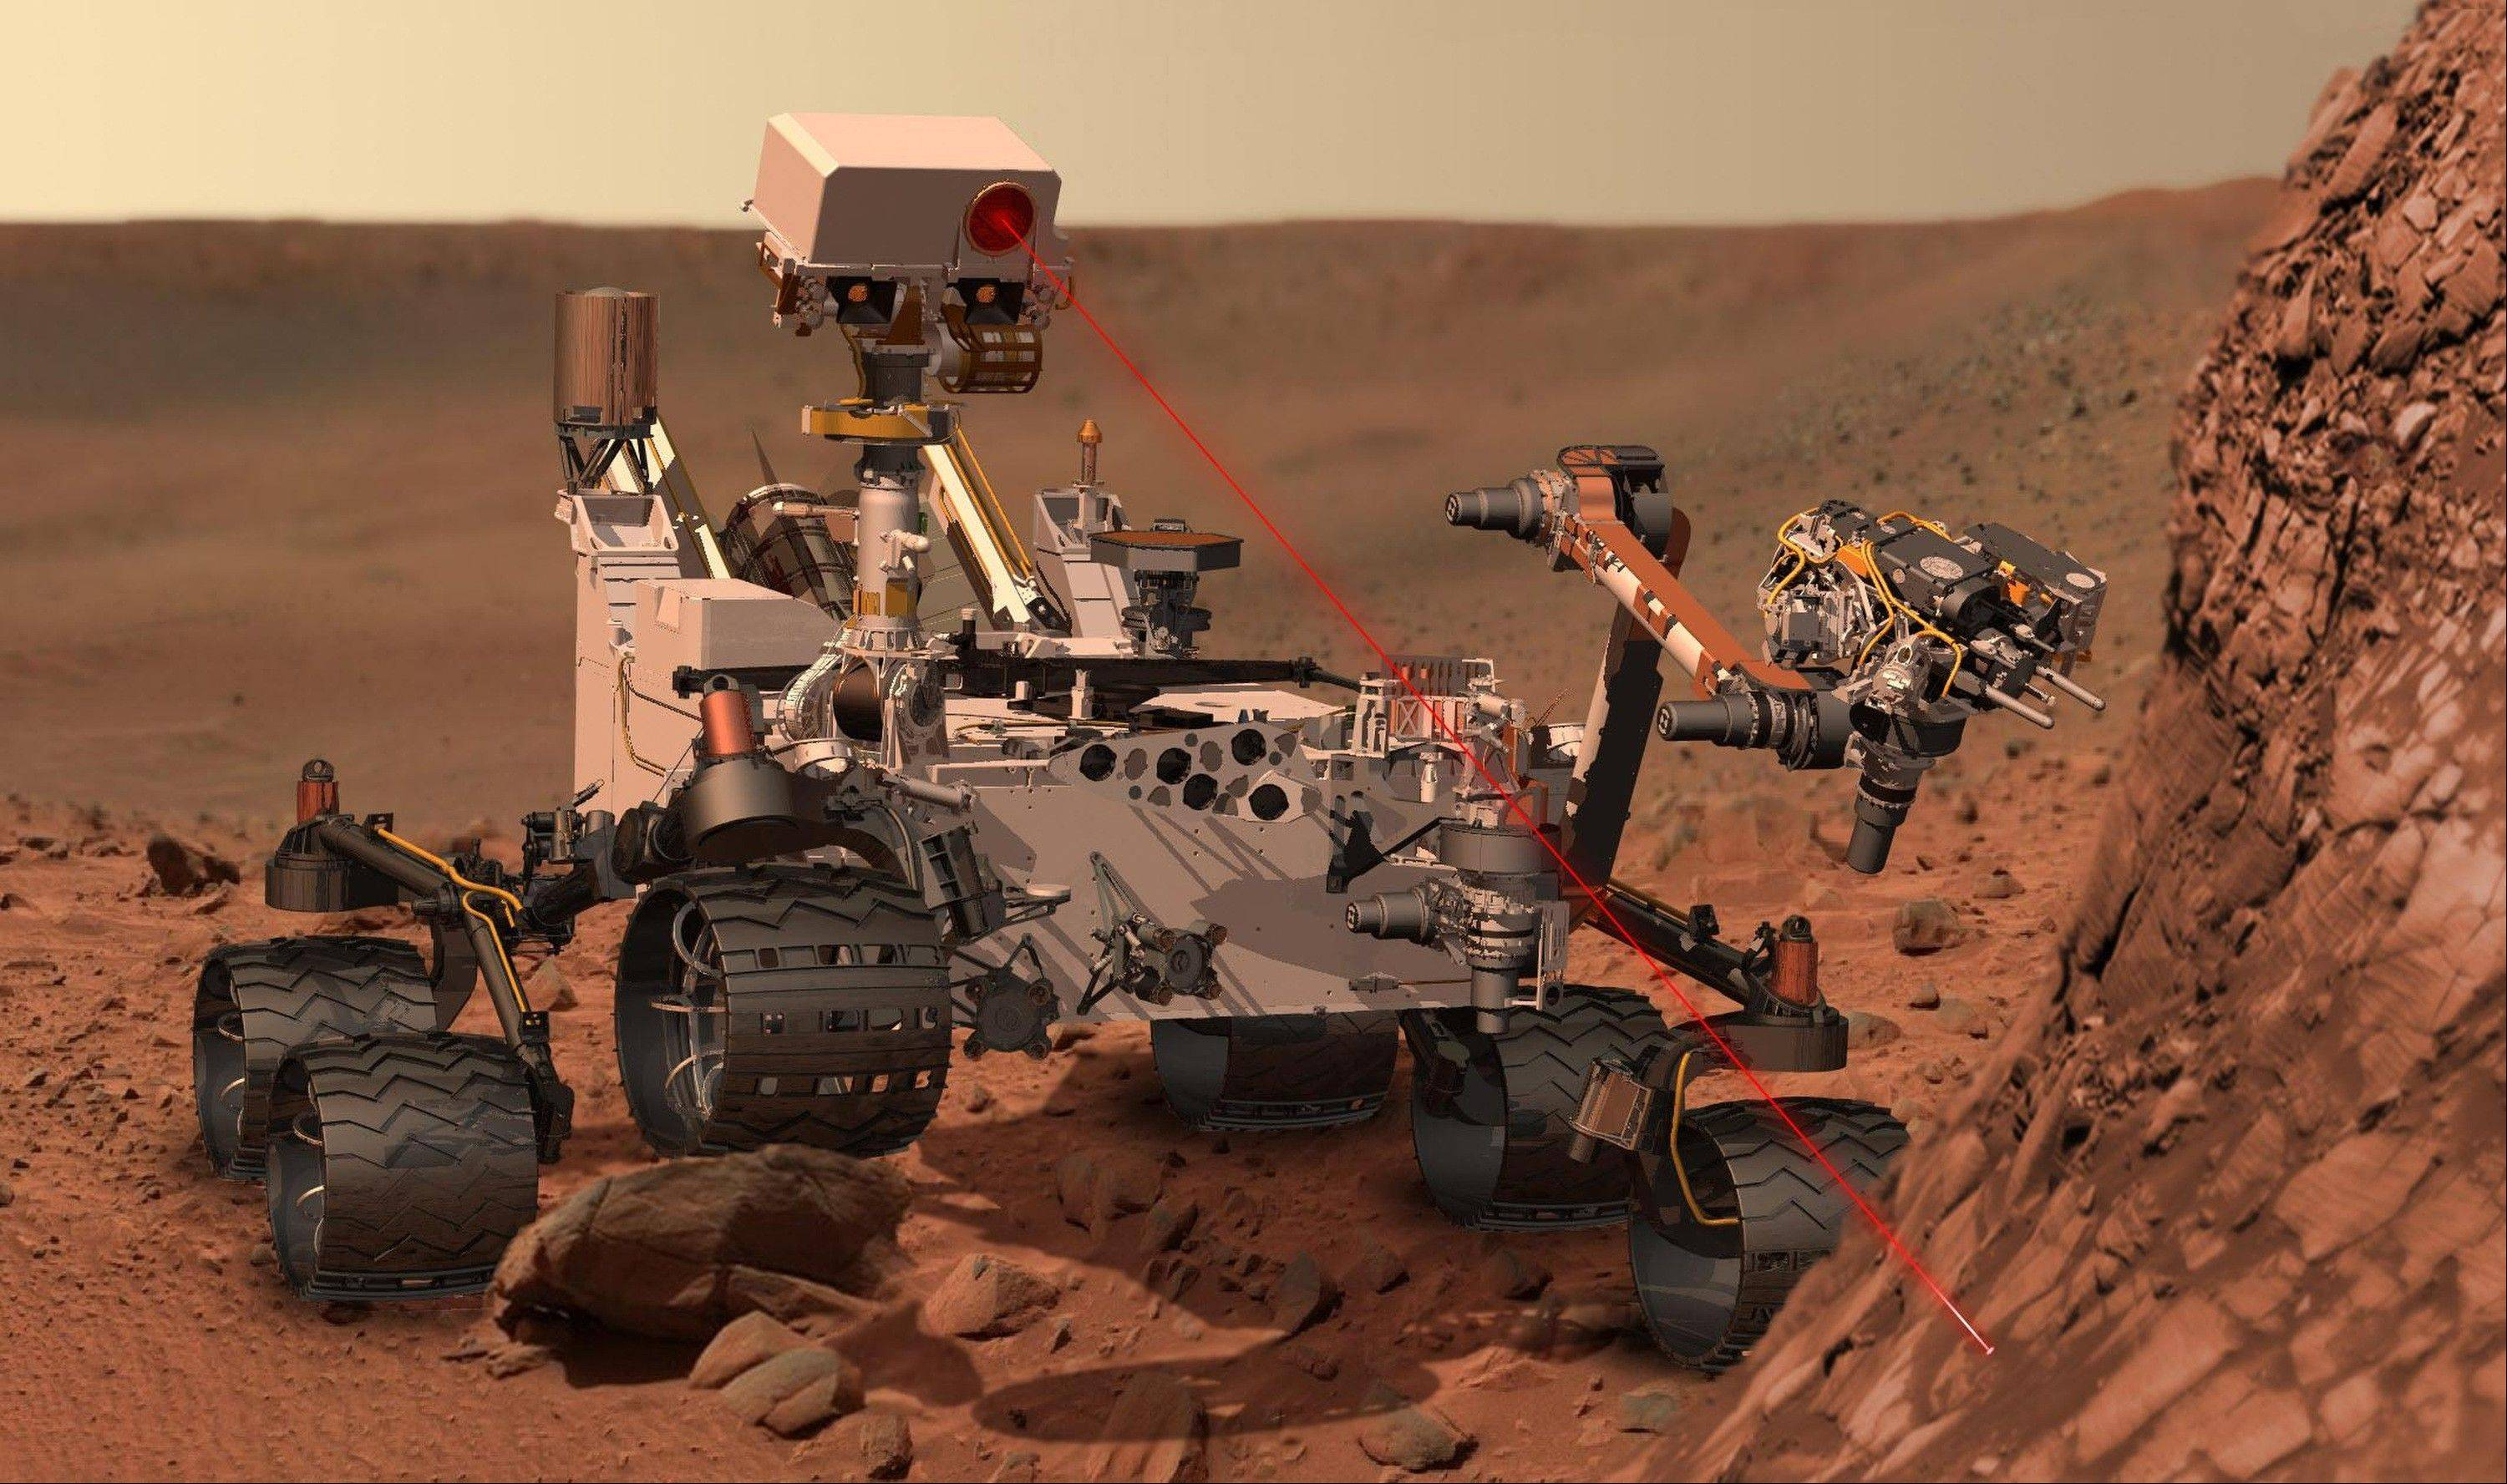 This artists rendering provided by NASA shows the Mars Rover, Curiosity. After traveling 8 1/2 months and 352 million miles, Curiosity will attempt a landing on Mars the night of Aug. 5, 2012.